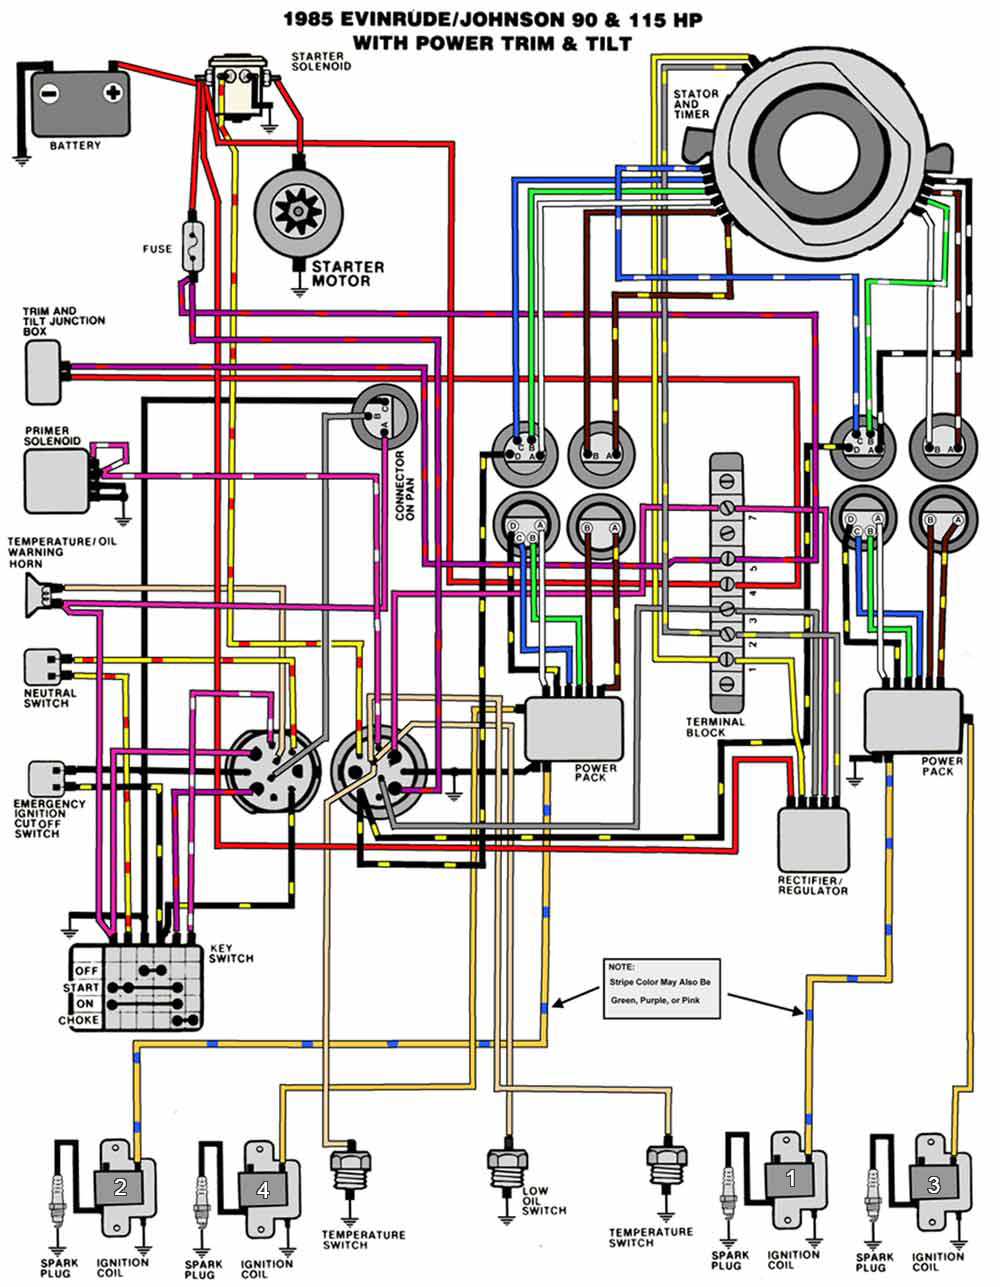 1985_90_115TnT mastertech marine evinrude johnson outboard wiring diagrams evinrude power trim wiring diagram at soozxer.org